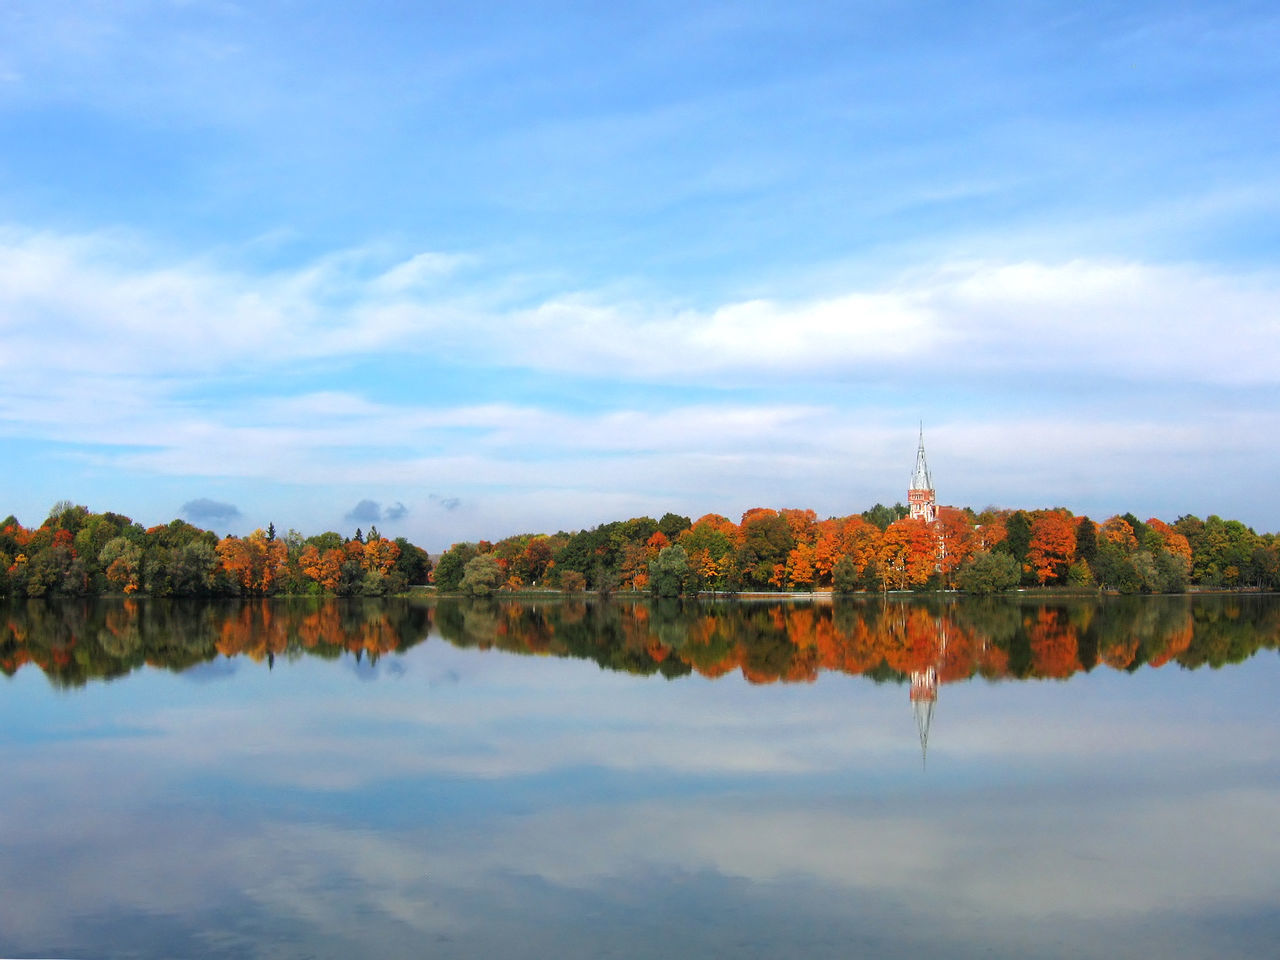 Lithuania in Autumn Architecture Autumn Autumn Colors Beauty In Nature Building Exterior Built Structure Change Cloud - Sky Day Lake Leaf Lentvaris Lithuania Nature No People Outdoors Reflection Scenics Sky Tower Tranquil Scene Tranquility Tree Water Waterfront